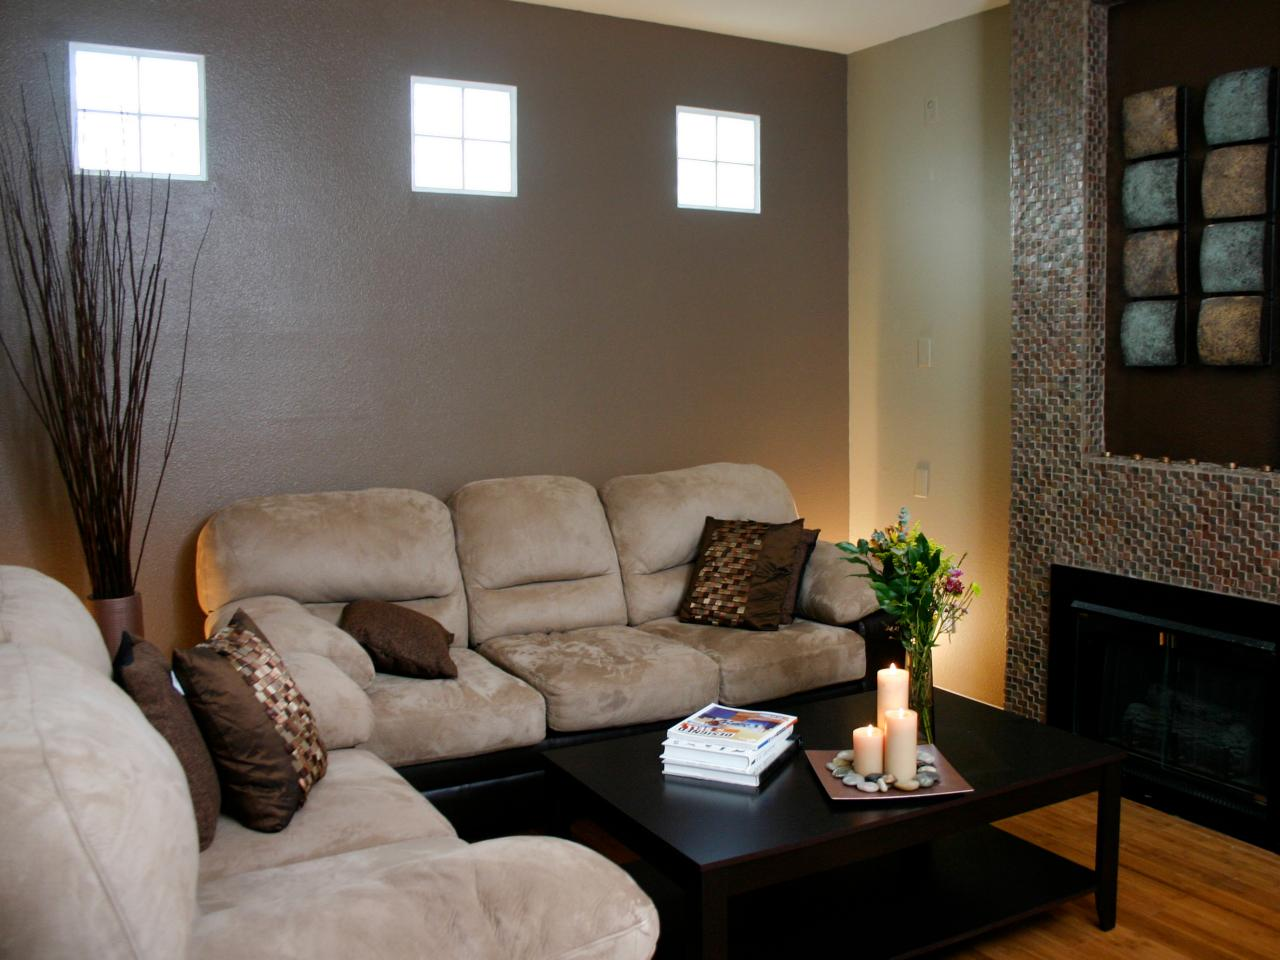 Photo page hgtv - Sofa gris como pintar las paredes ...